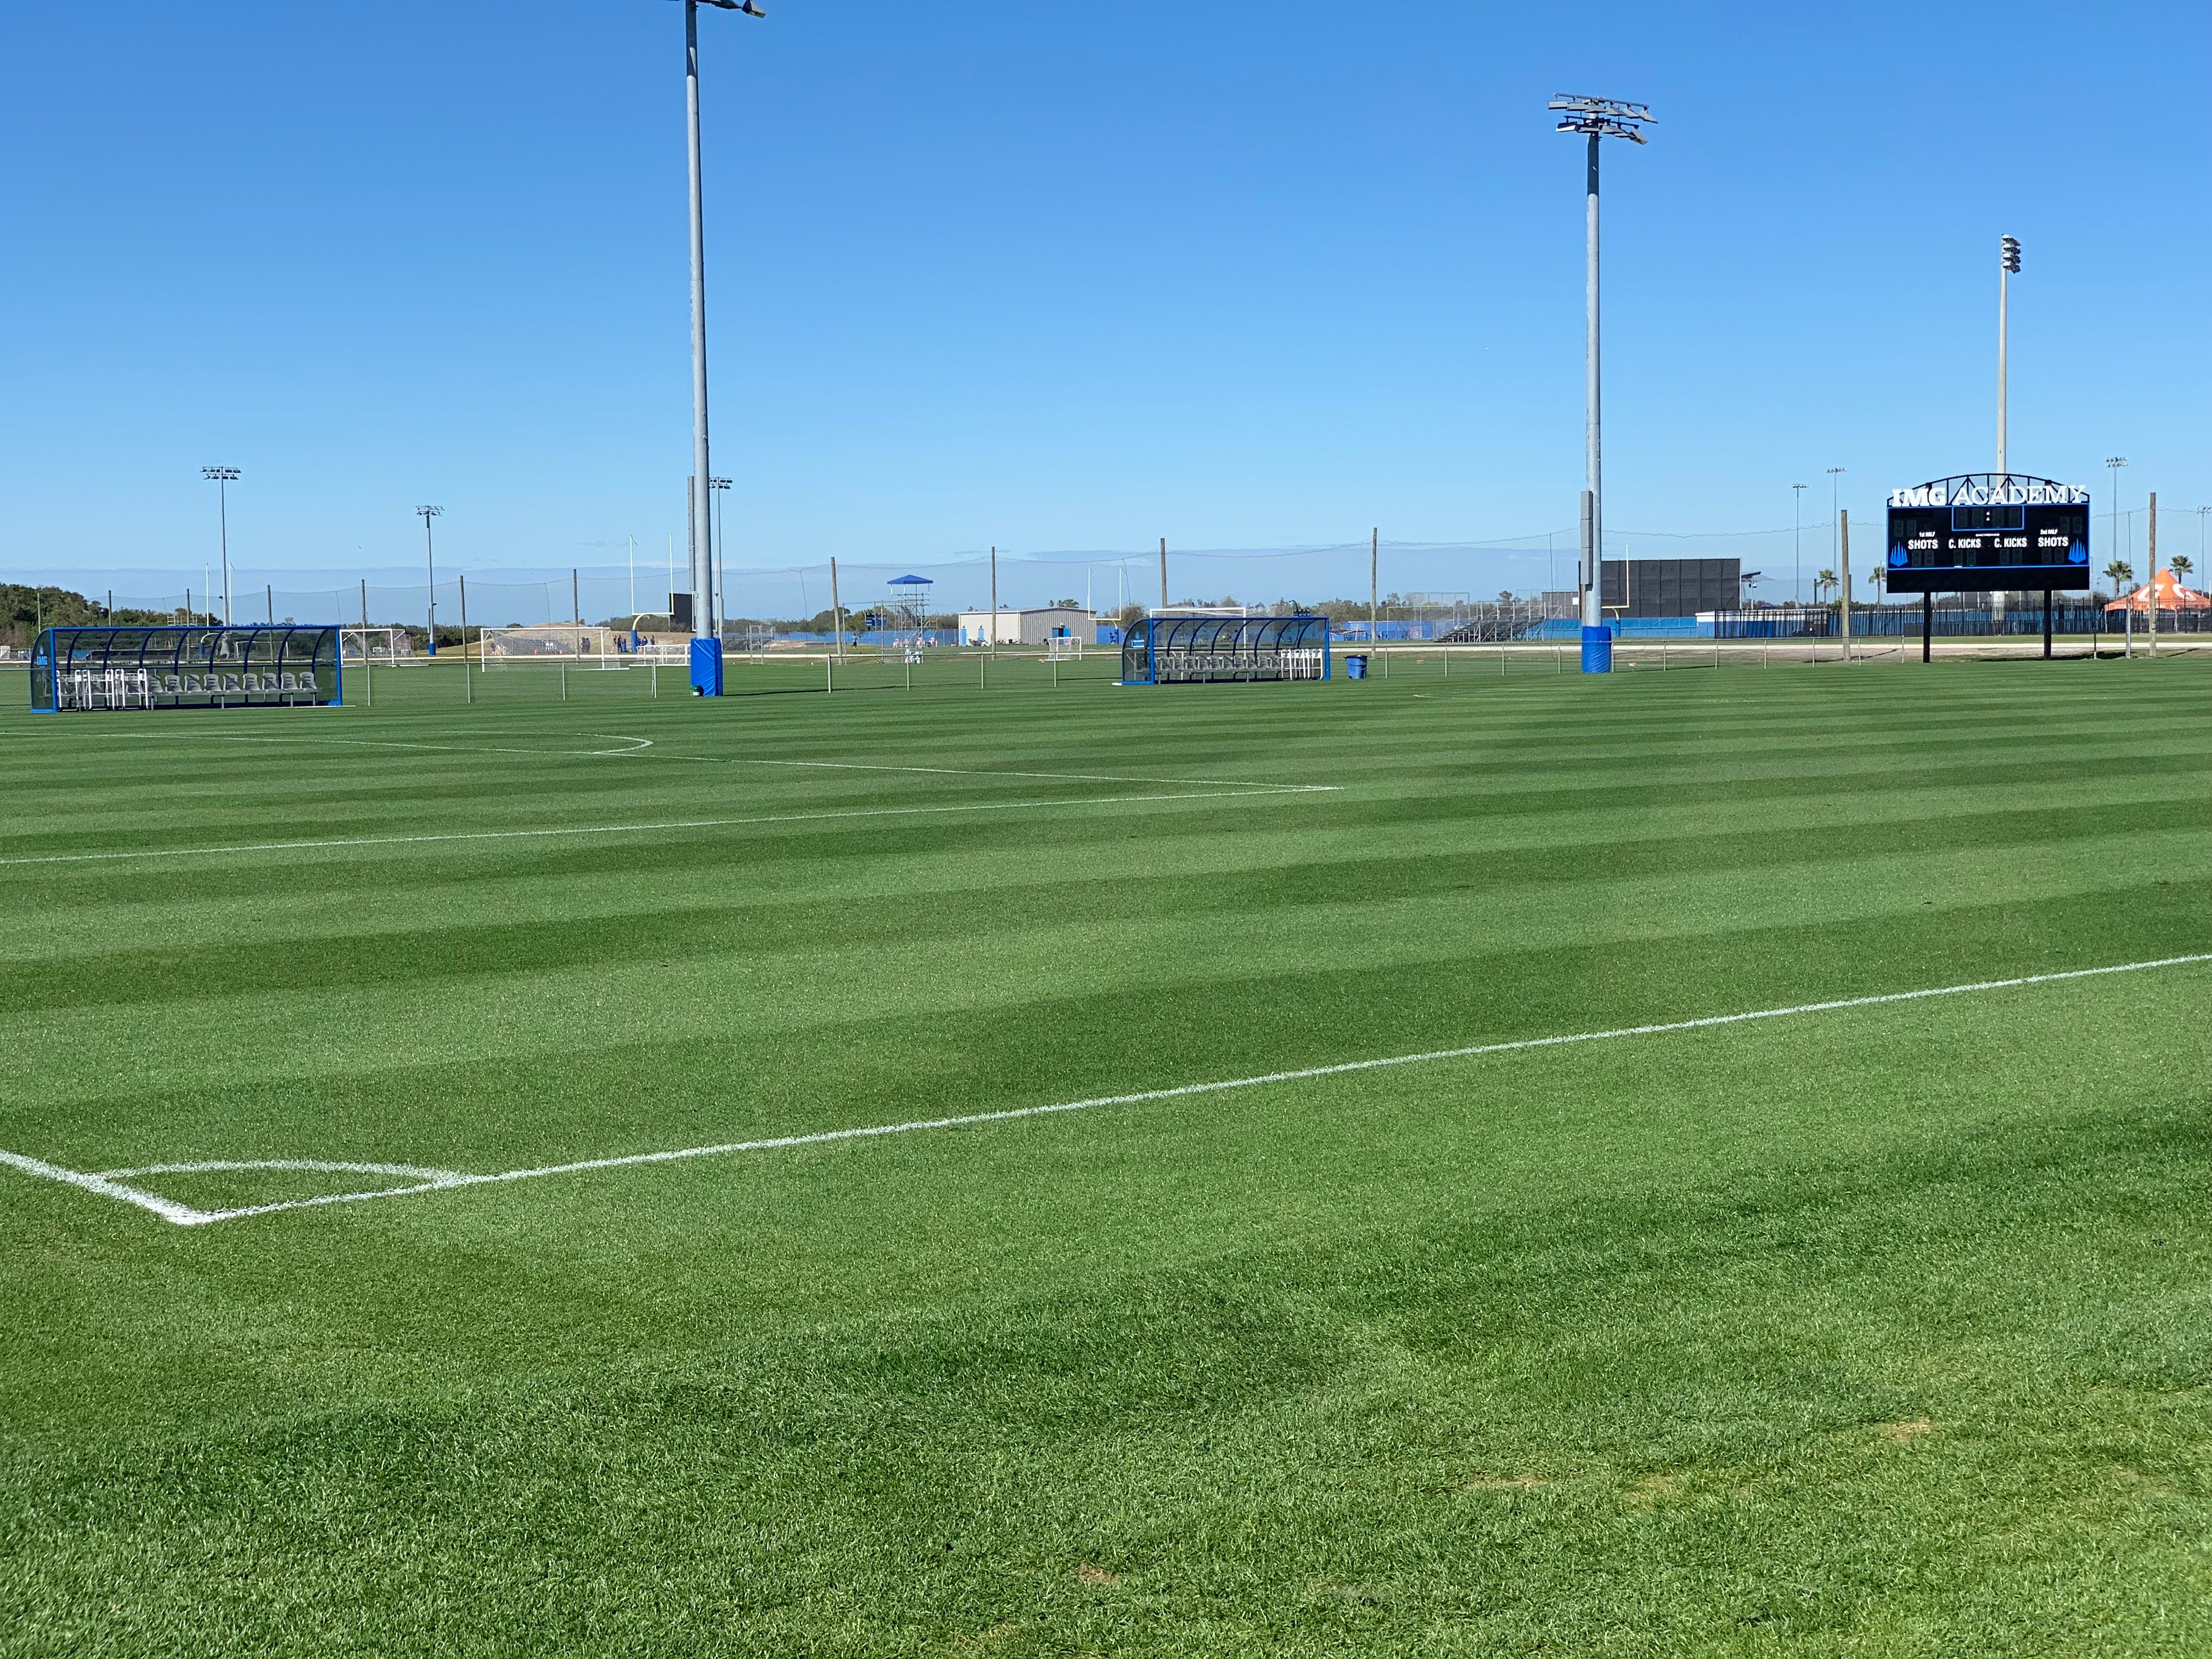 A view out on the pristine grass pitch for match play at the IMG Academy's Soccer Complex.